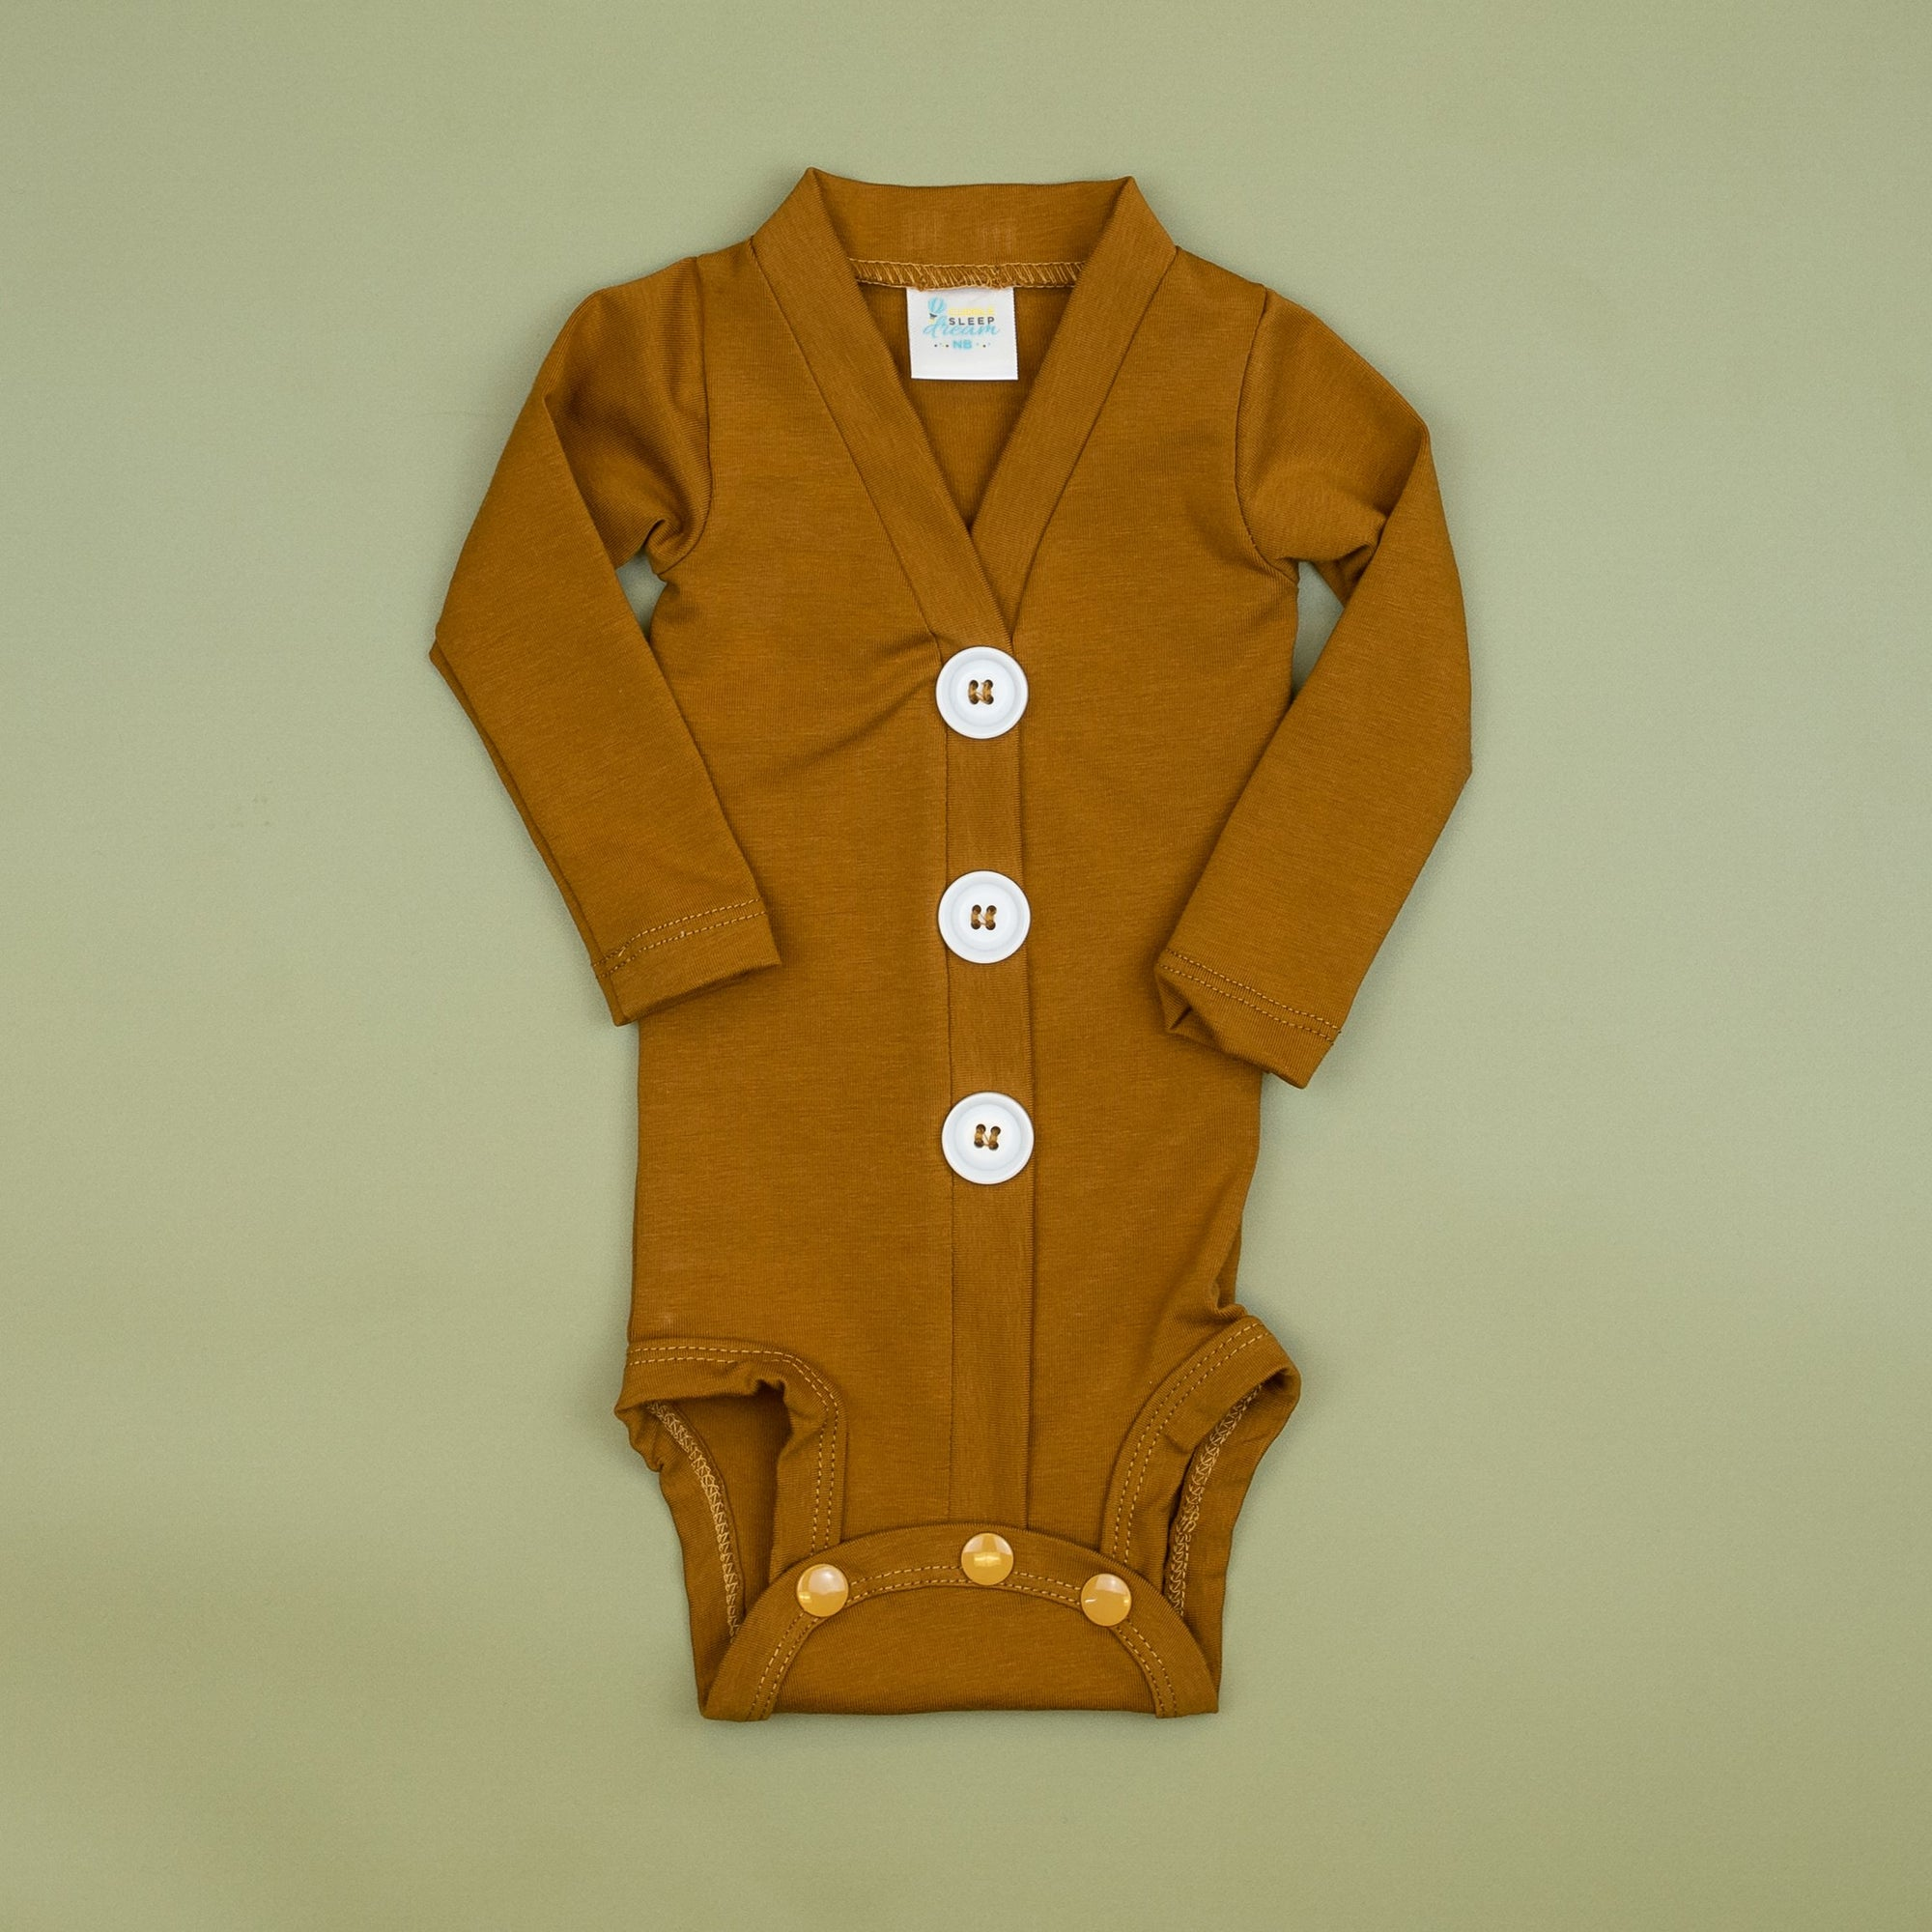 Cuddle Sleep Dream Cardigan Gingerbread Cardisuit (Nov 2020)